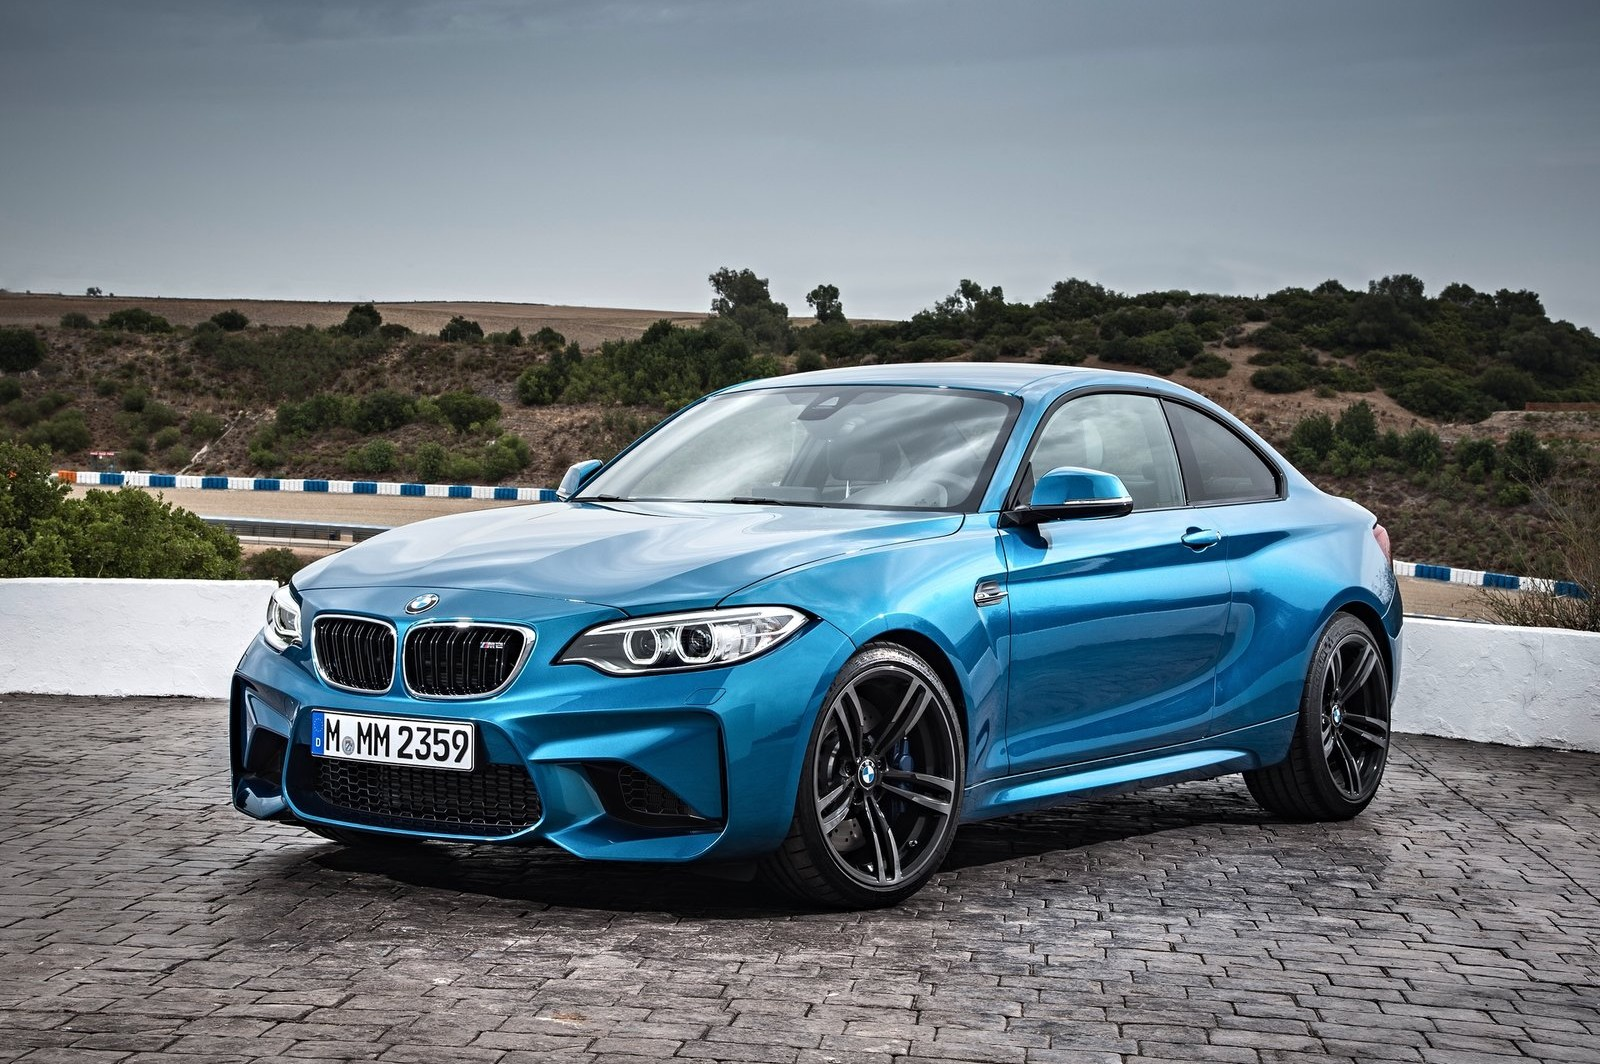 The M2 is a speed-focused version of BMW's compact 2 Series coupe.